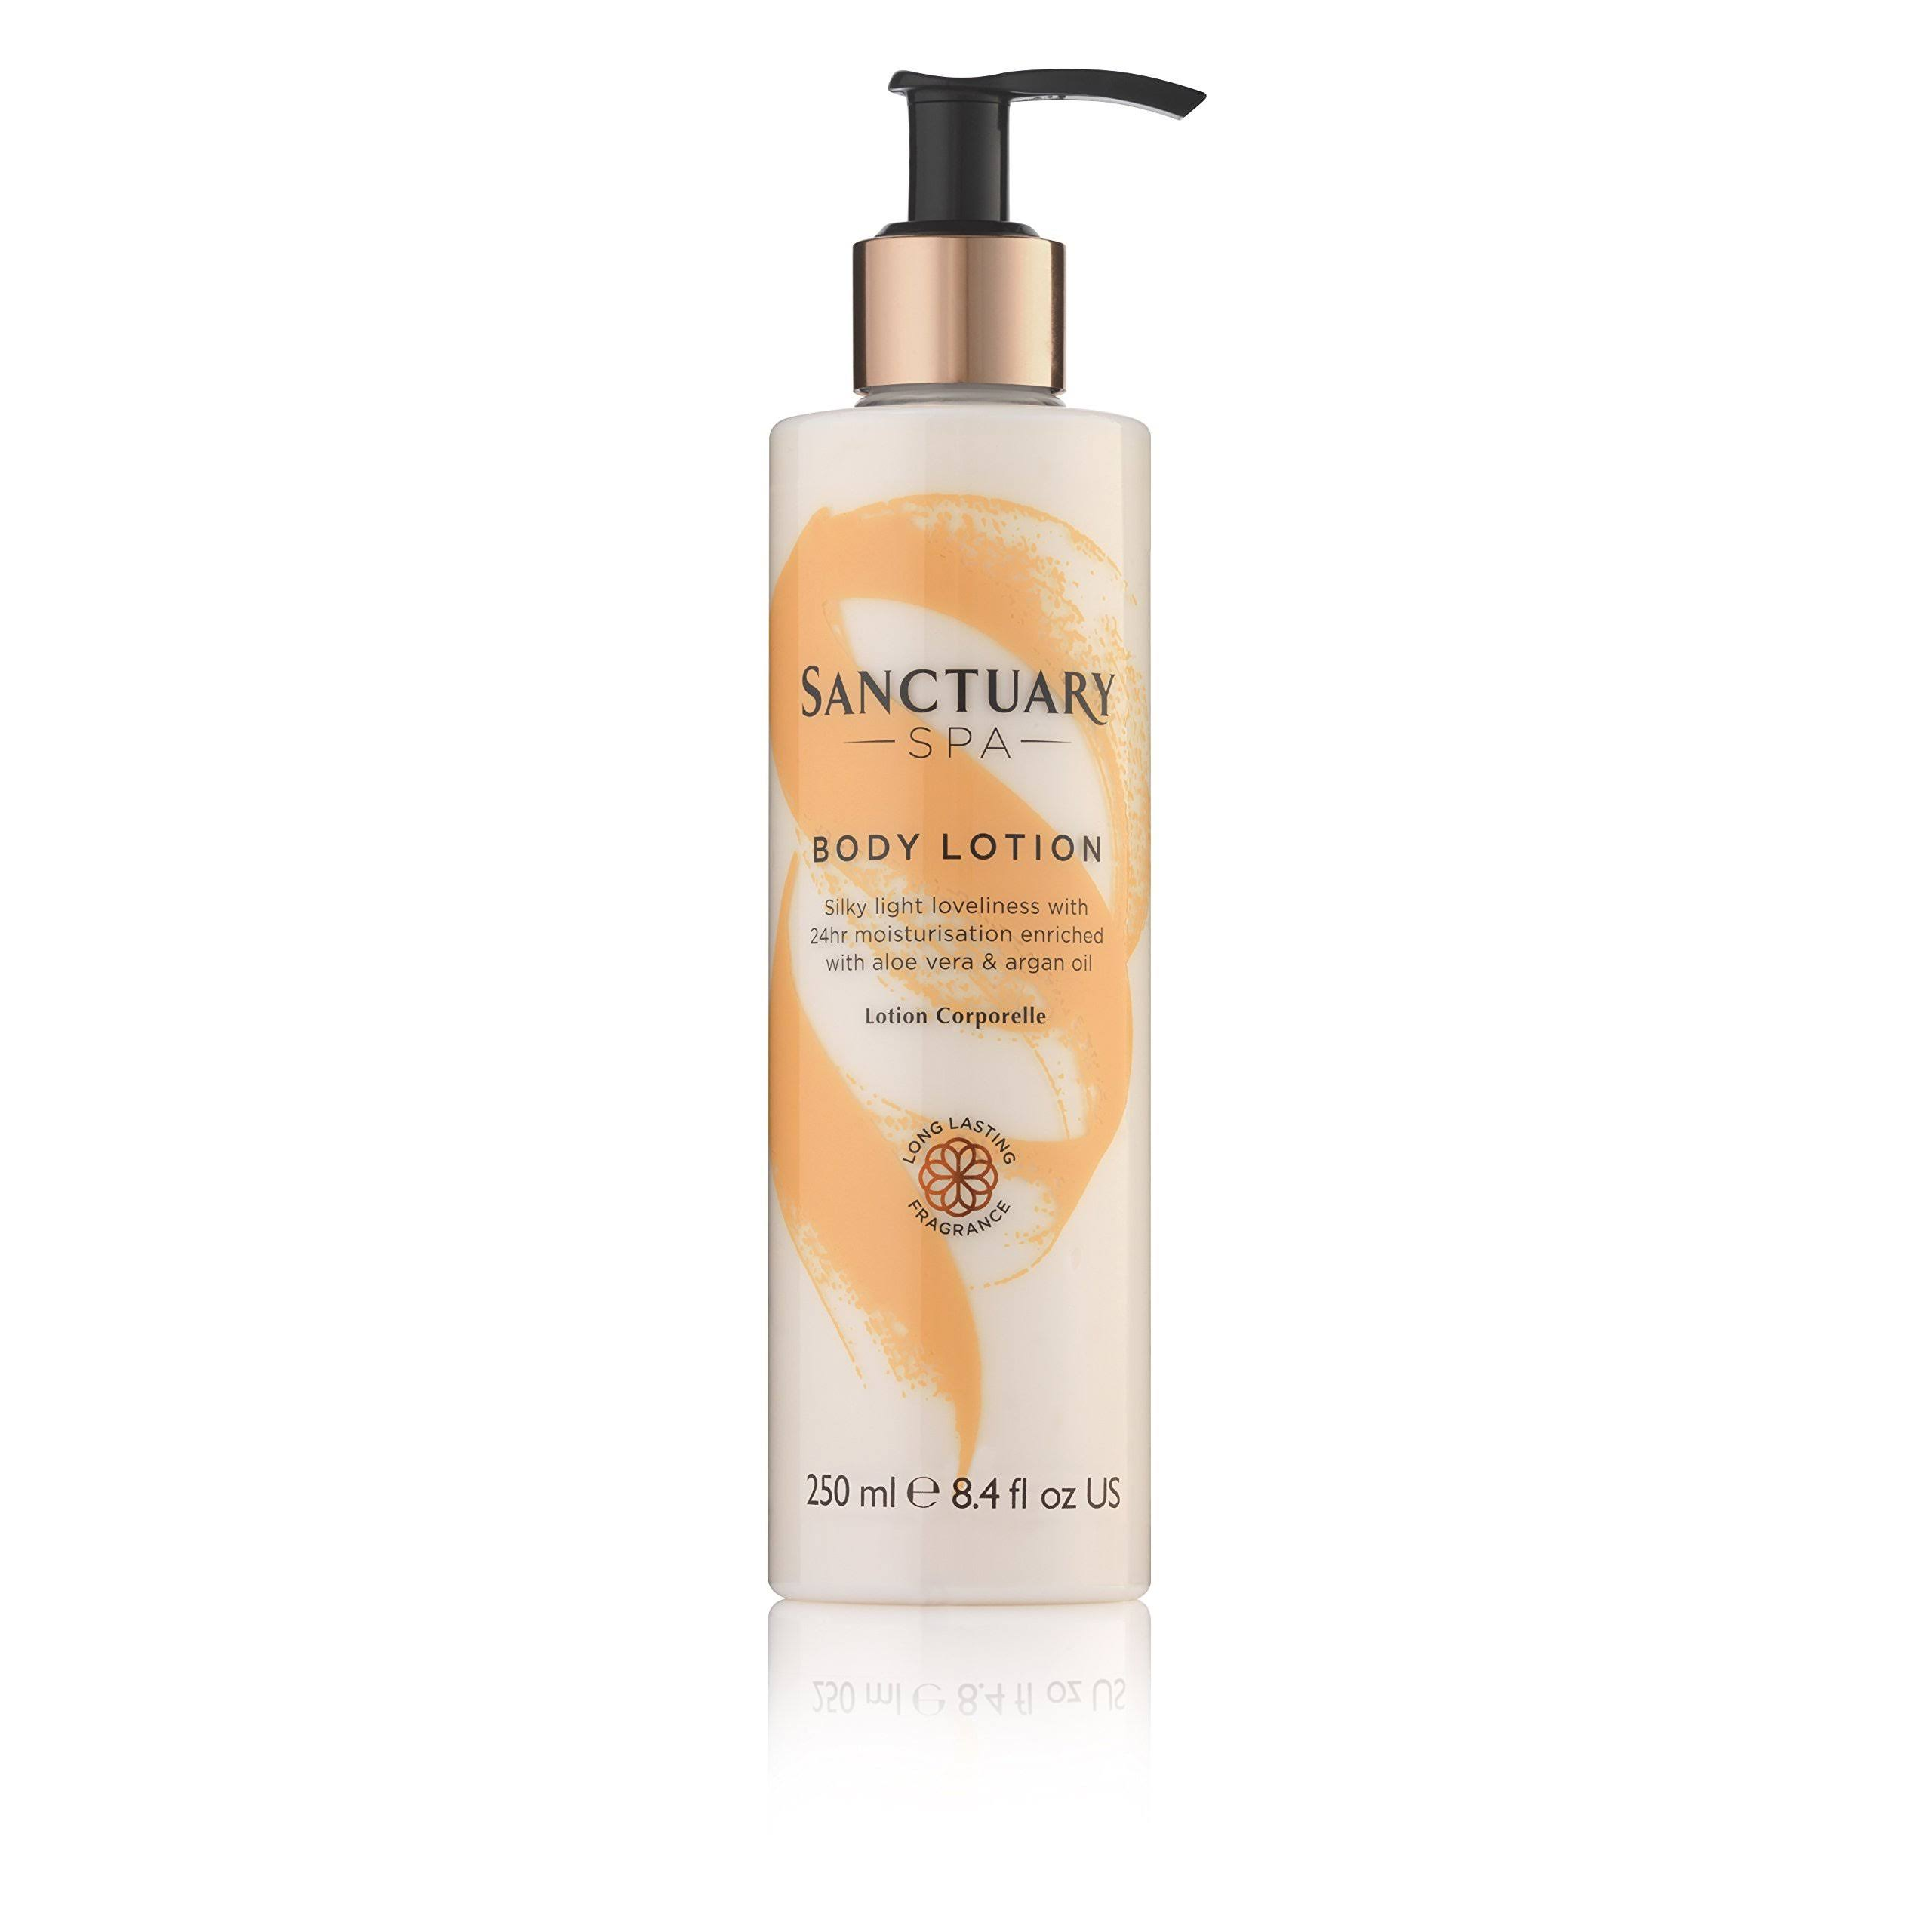 Sanctuary Spa Body Lotion, 250 ml